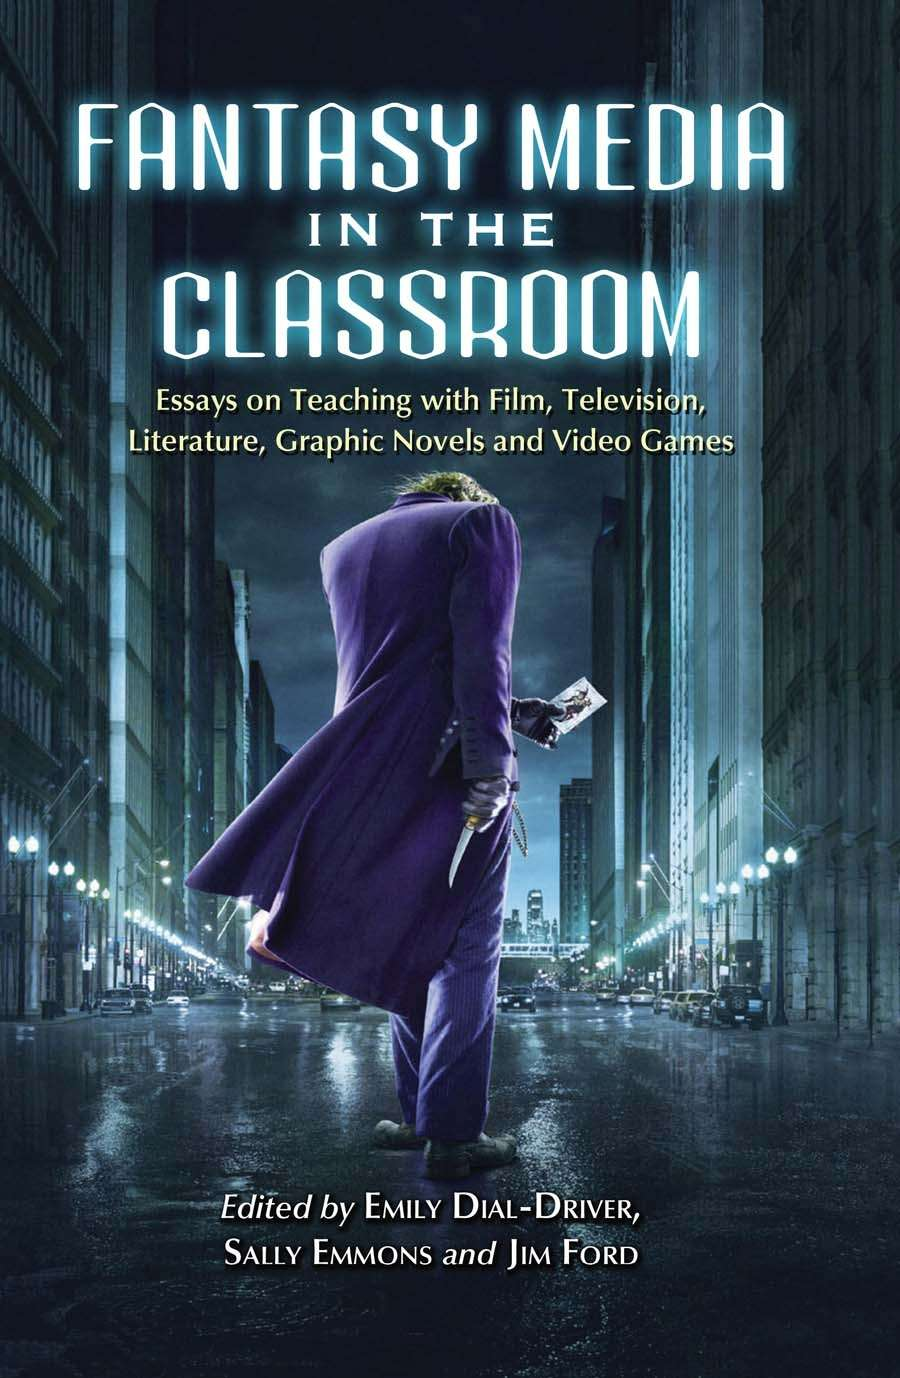 Fantasy Media In The Classroom Essays On Teaching With Film  Fantasy Media In The Classroom Essays On Teaching With Film Television  Literature Graphic Novels And Video Games  Mcfarland   Drivethrufictioncom